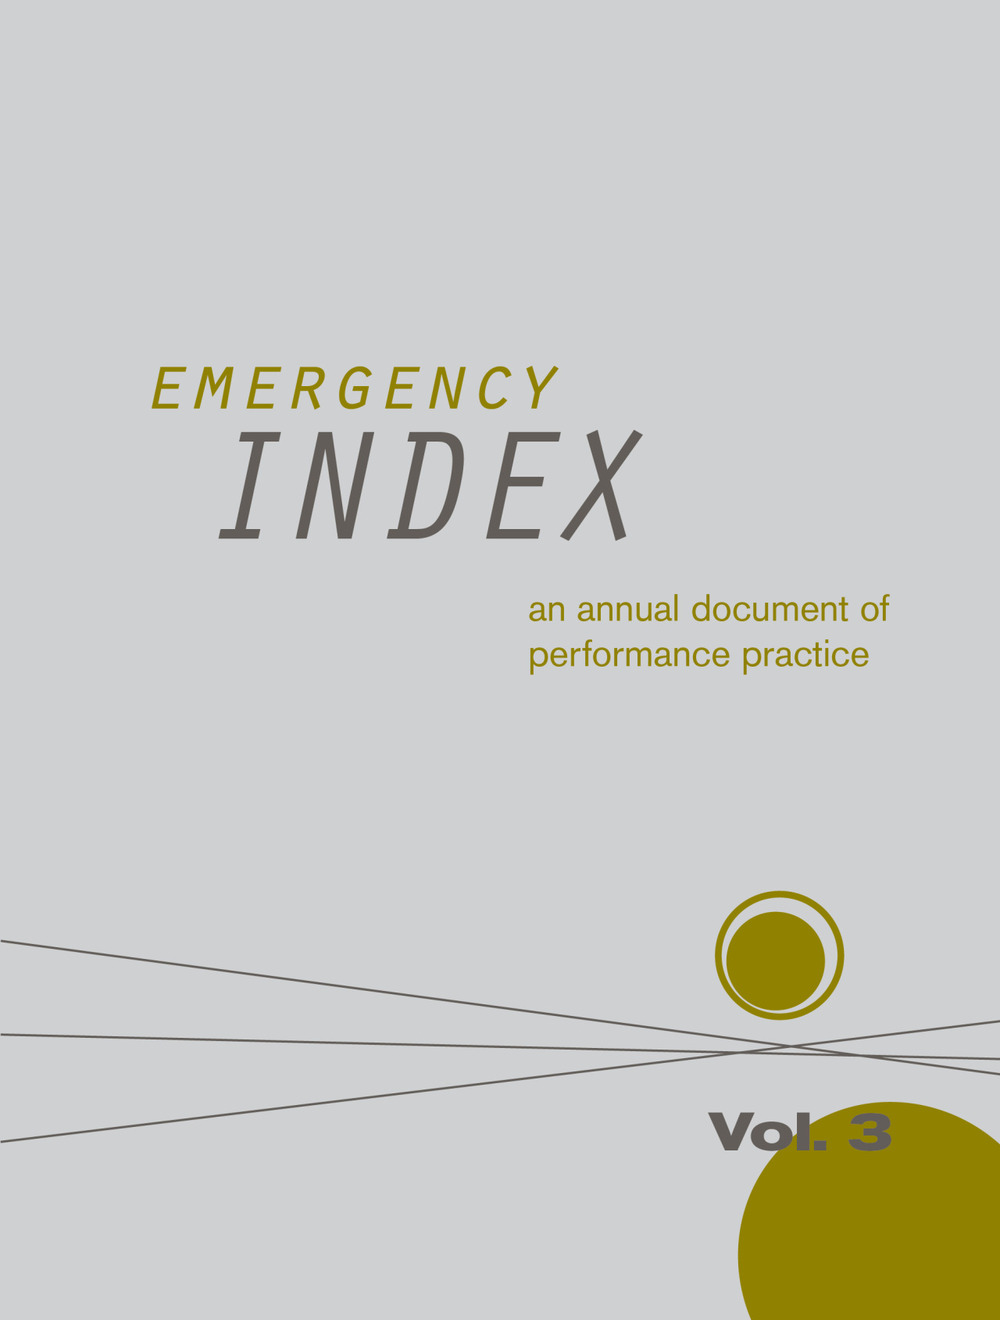 "Quinn Dukes  (MFA AP15) contributed to  ""EMERGENCY INDEX: AN ANNUAL DOCUMENT OF PERFORMANCE PRACTICE, VOL. 3""  which documents performative work within the past year. Check out her work as well as performance artists from around the world."